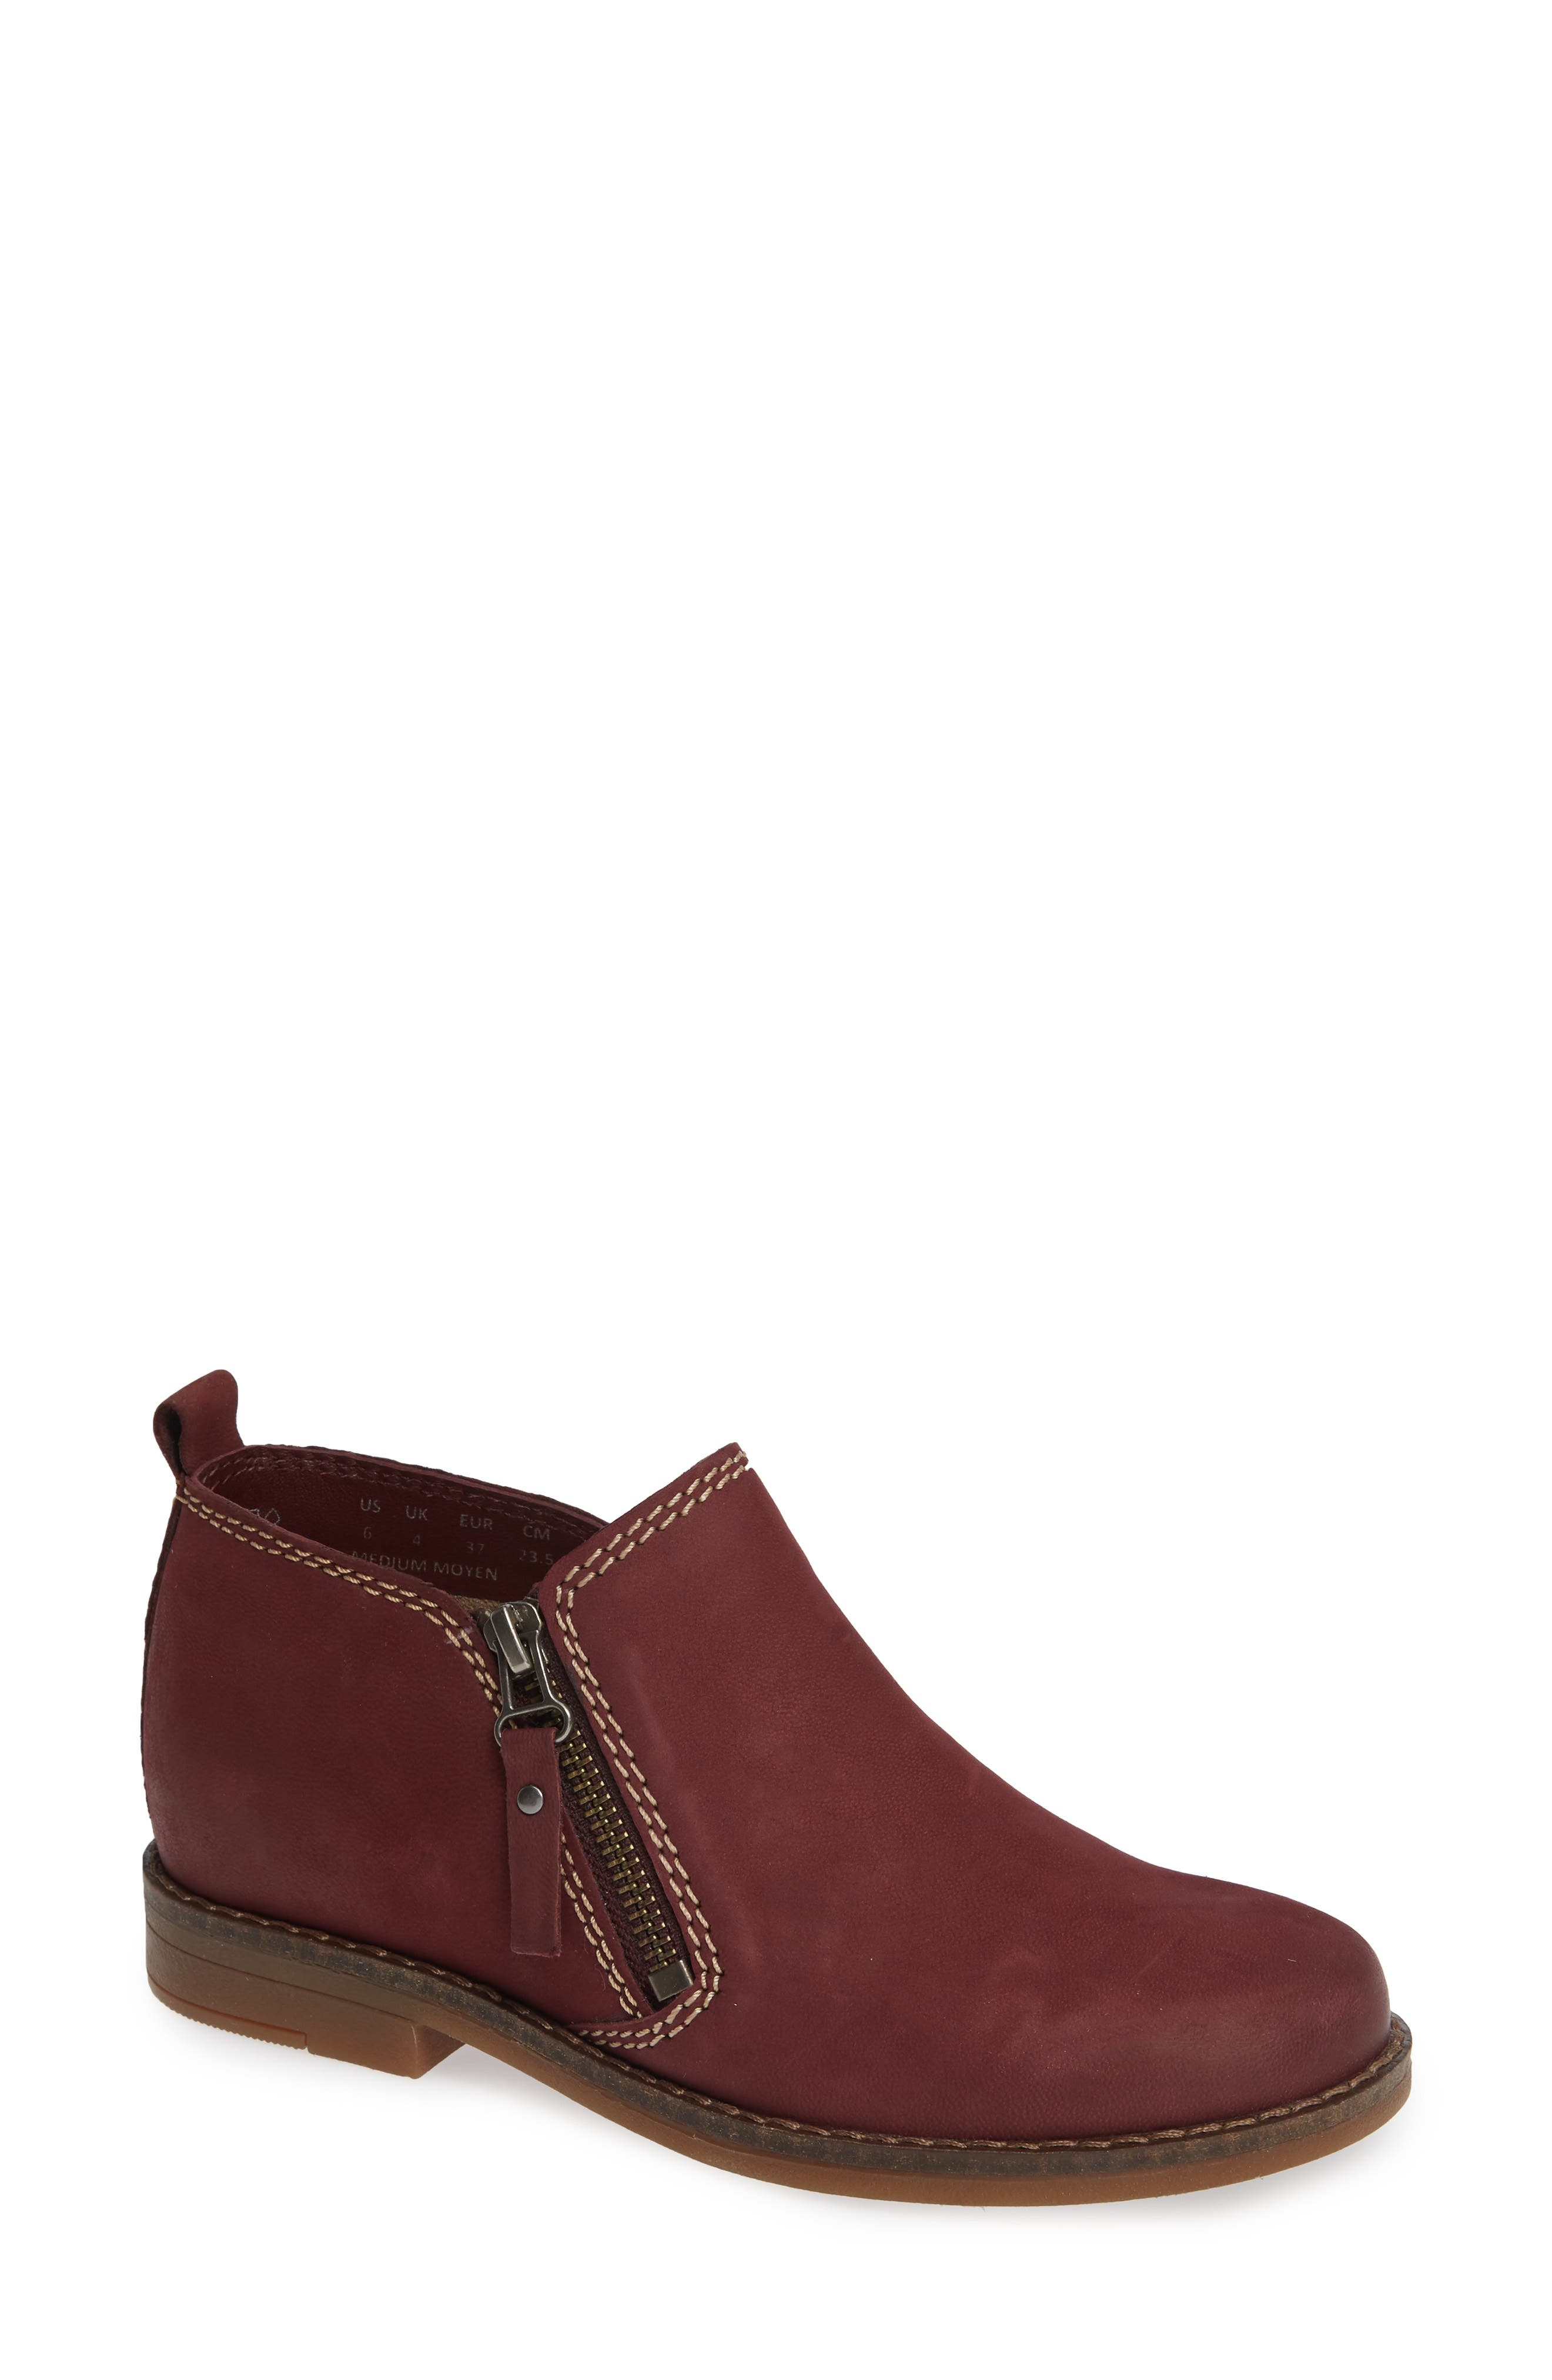 'Mazin Cayto' Bootie,                             Main thumbnail 1, color,                             Dark Wine Nubuck